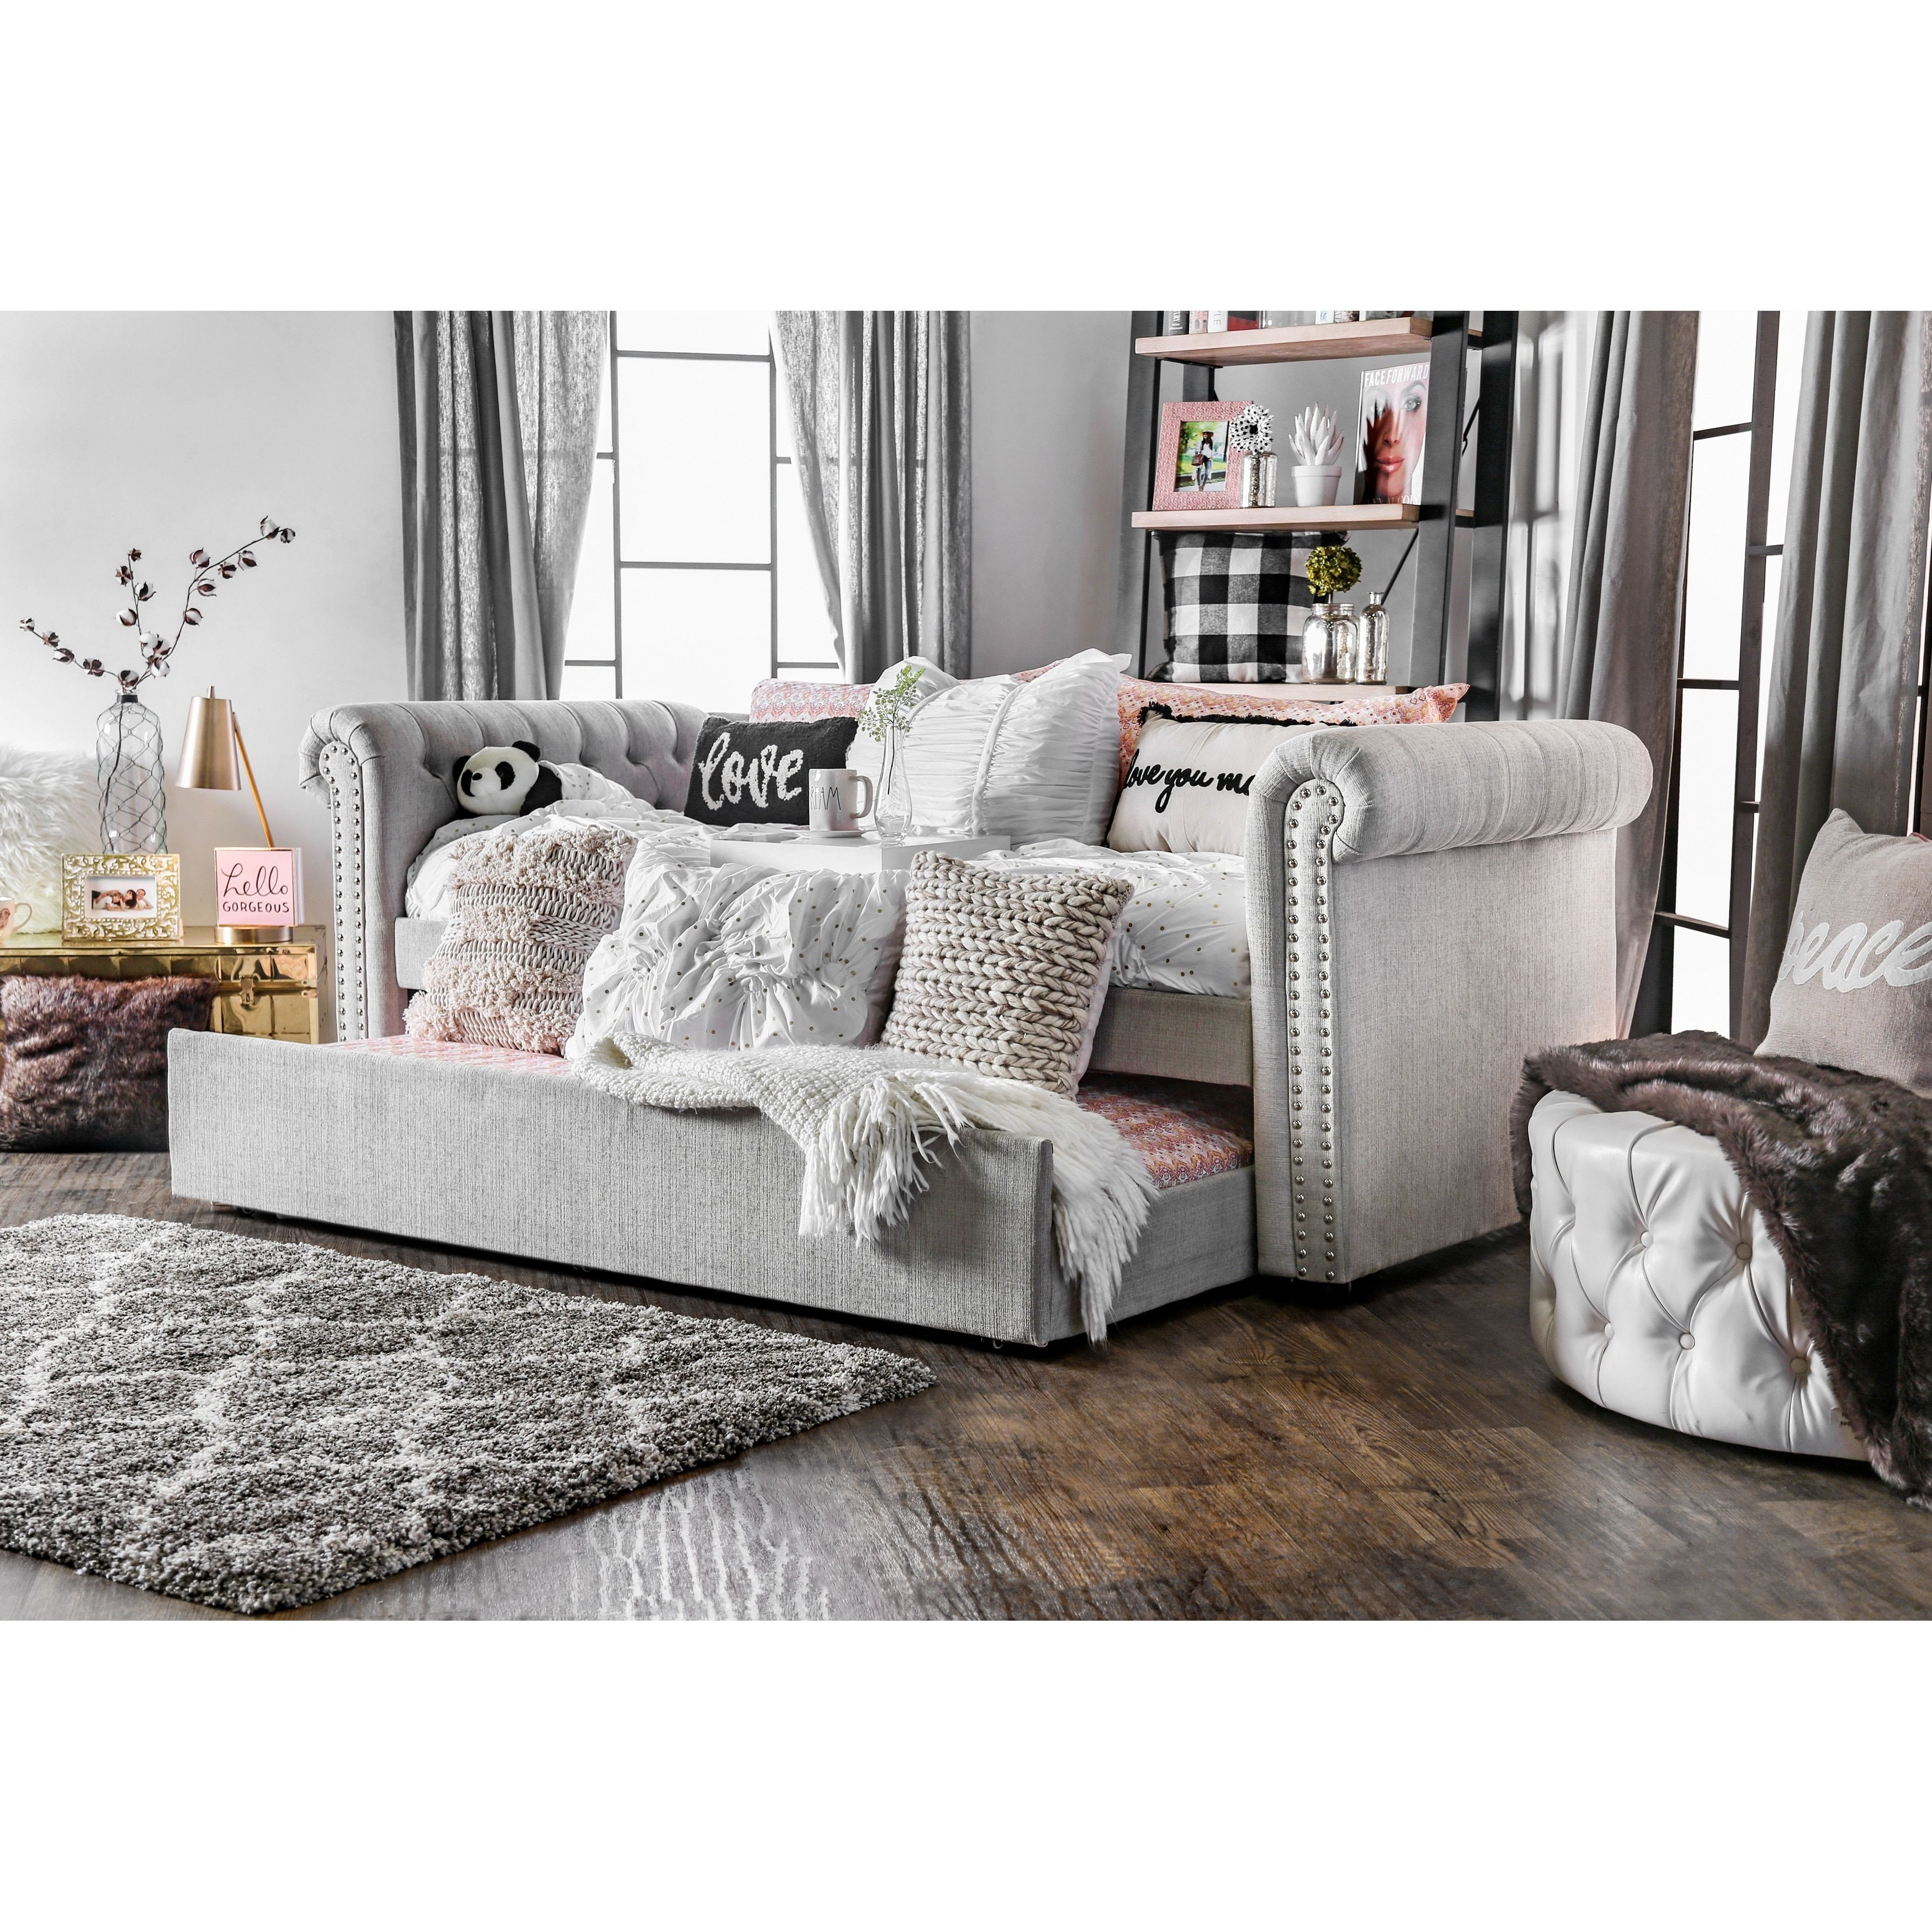 Shop Overstock.com And Find The Best Online Deals On